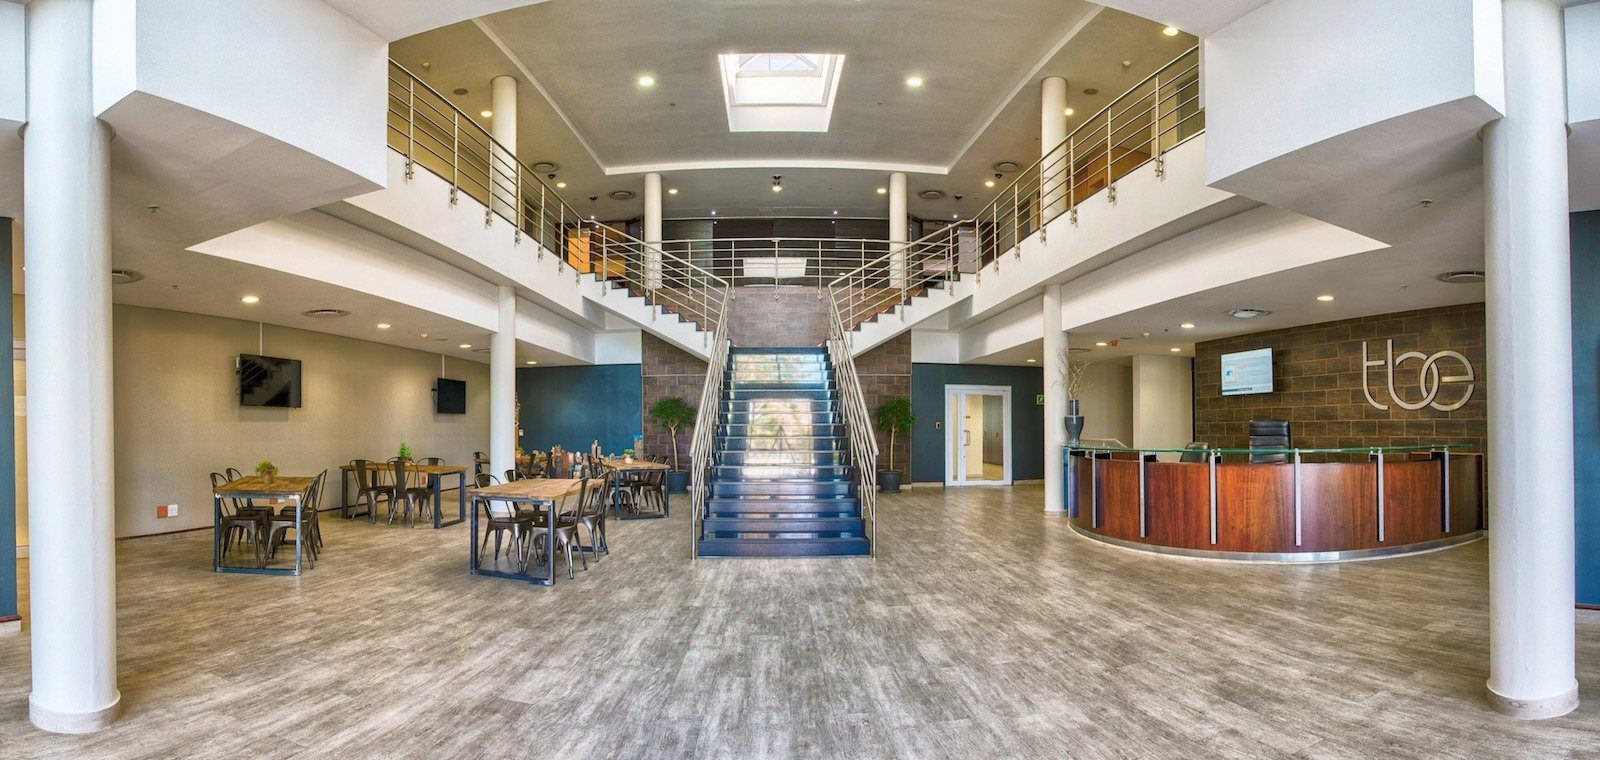 andton Serviced Offices In Sandton Shared Office Space Flexible Office Space Enterance Final Brown